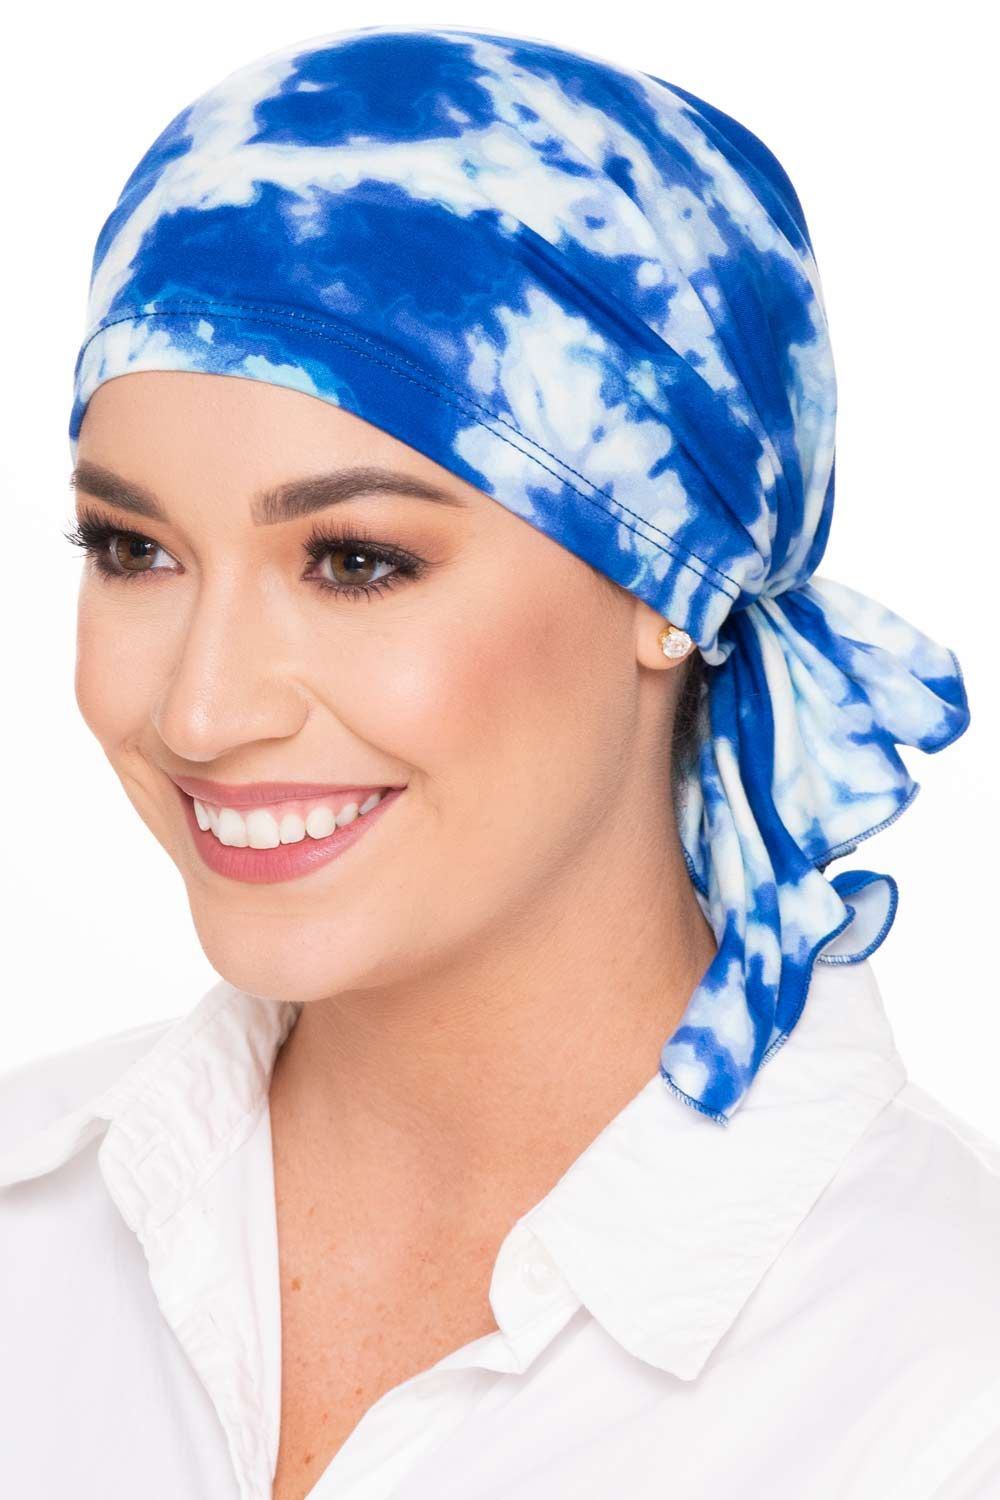 Slip-On Slinky Pre-Tied Headwrap for Cancer Patients